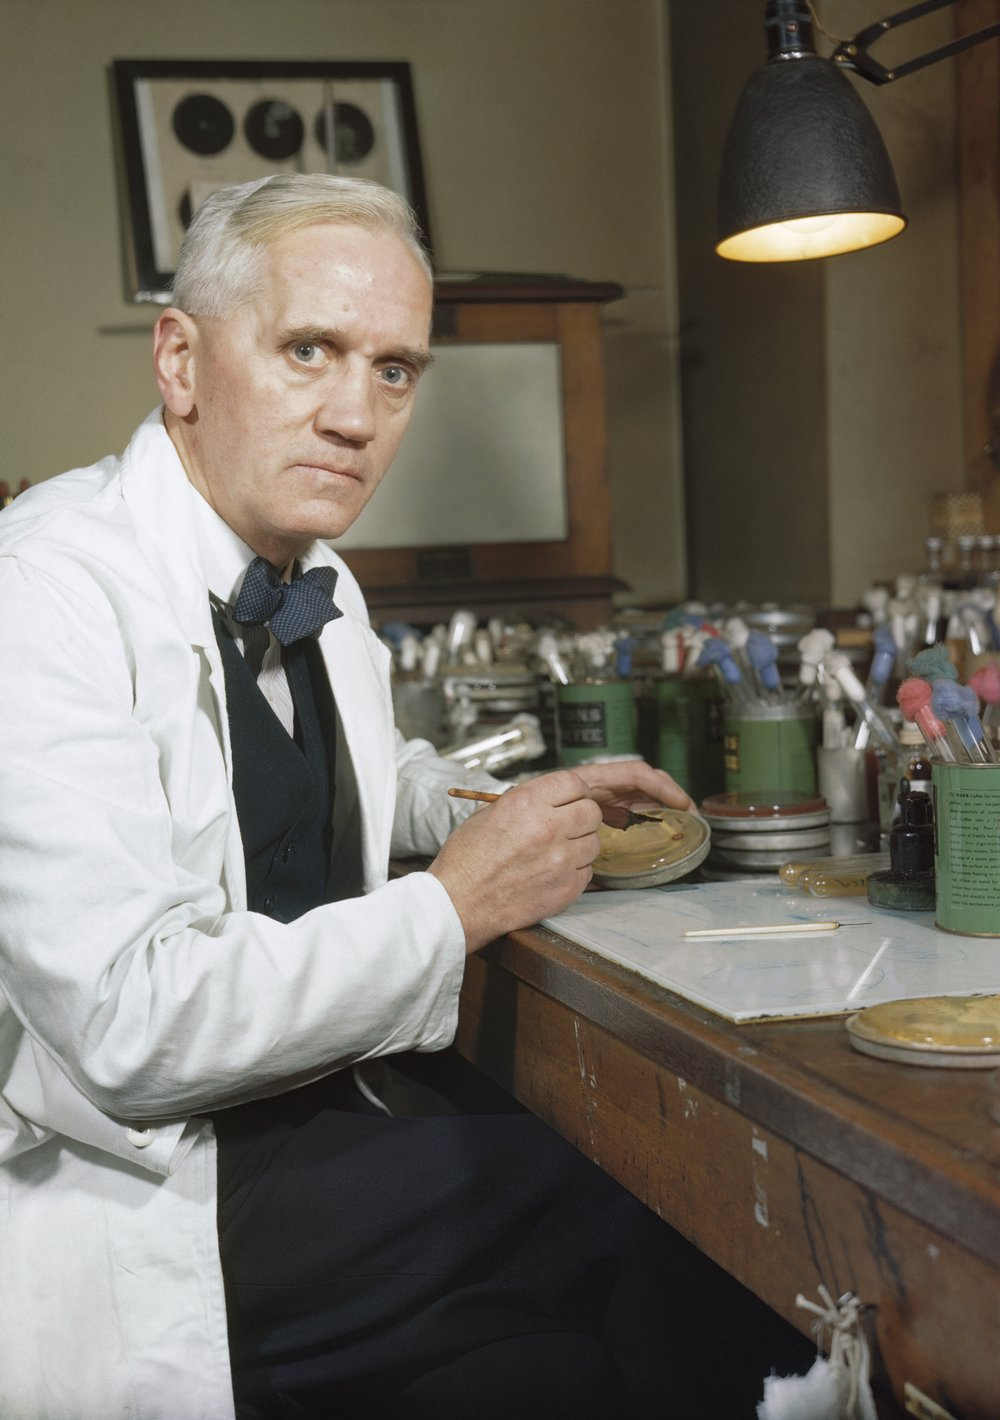 Sir Alexander Fleming, looking rather intense for the photographer  By Official photographer - http://media.iwm.org.uk/iwm/mediaLib//32/media-32192/large.jpgThis is photograph TR 1468 from the collections of the Imperial War Museums., Public Domain, https://commons.wikimedia.org/w/index.php?curid=24436974